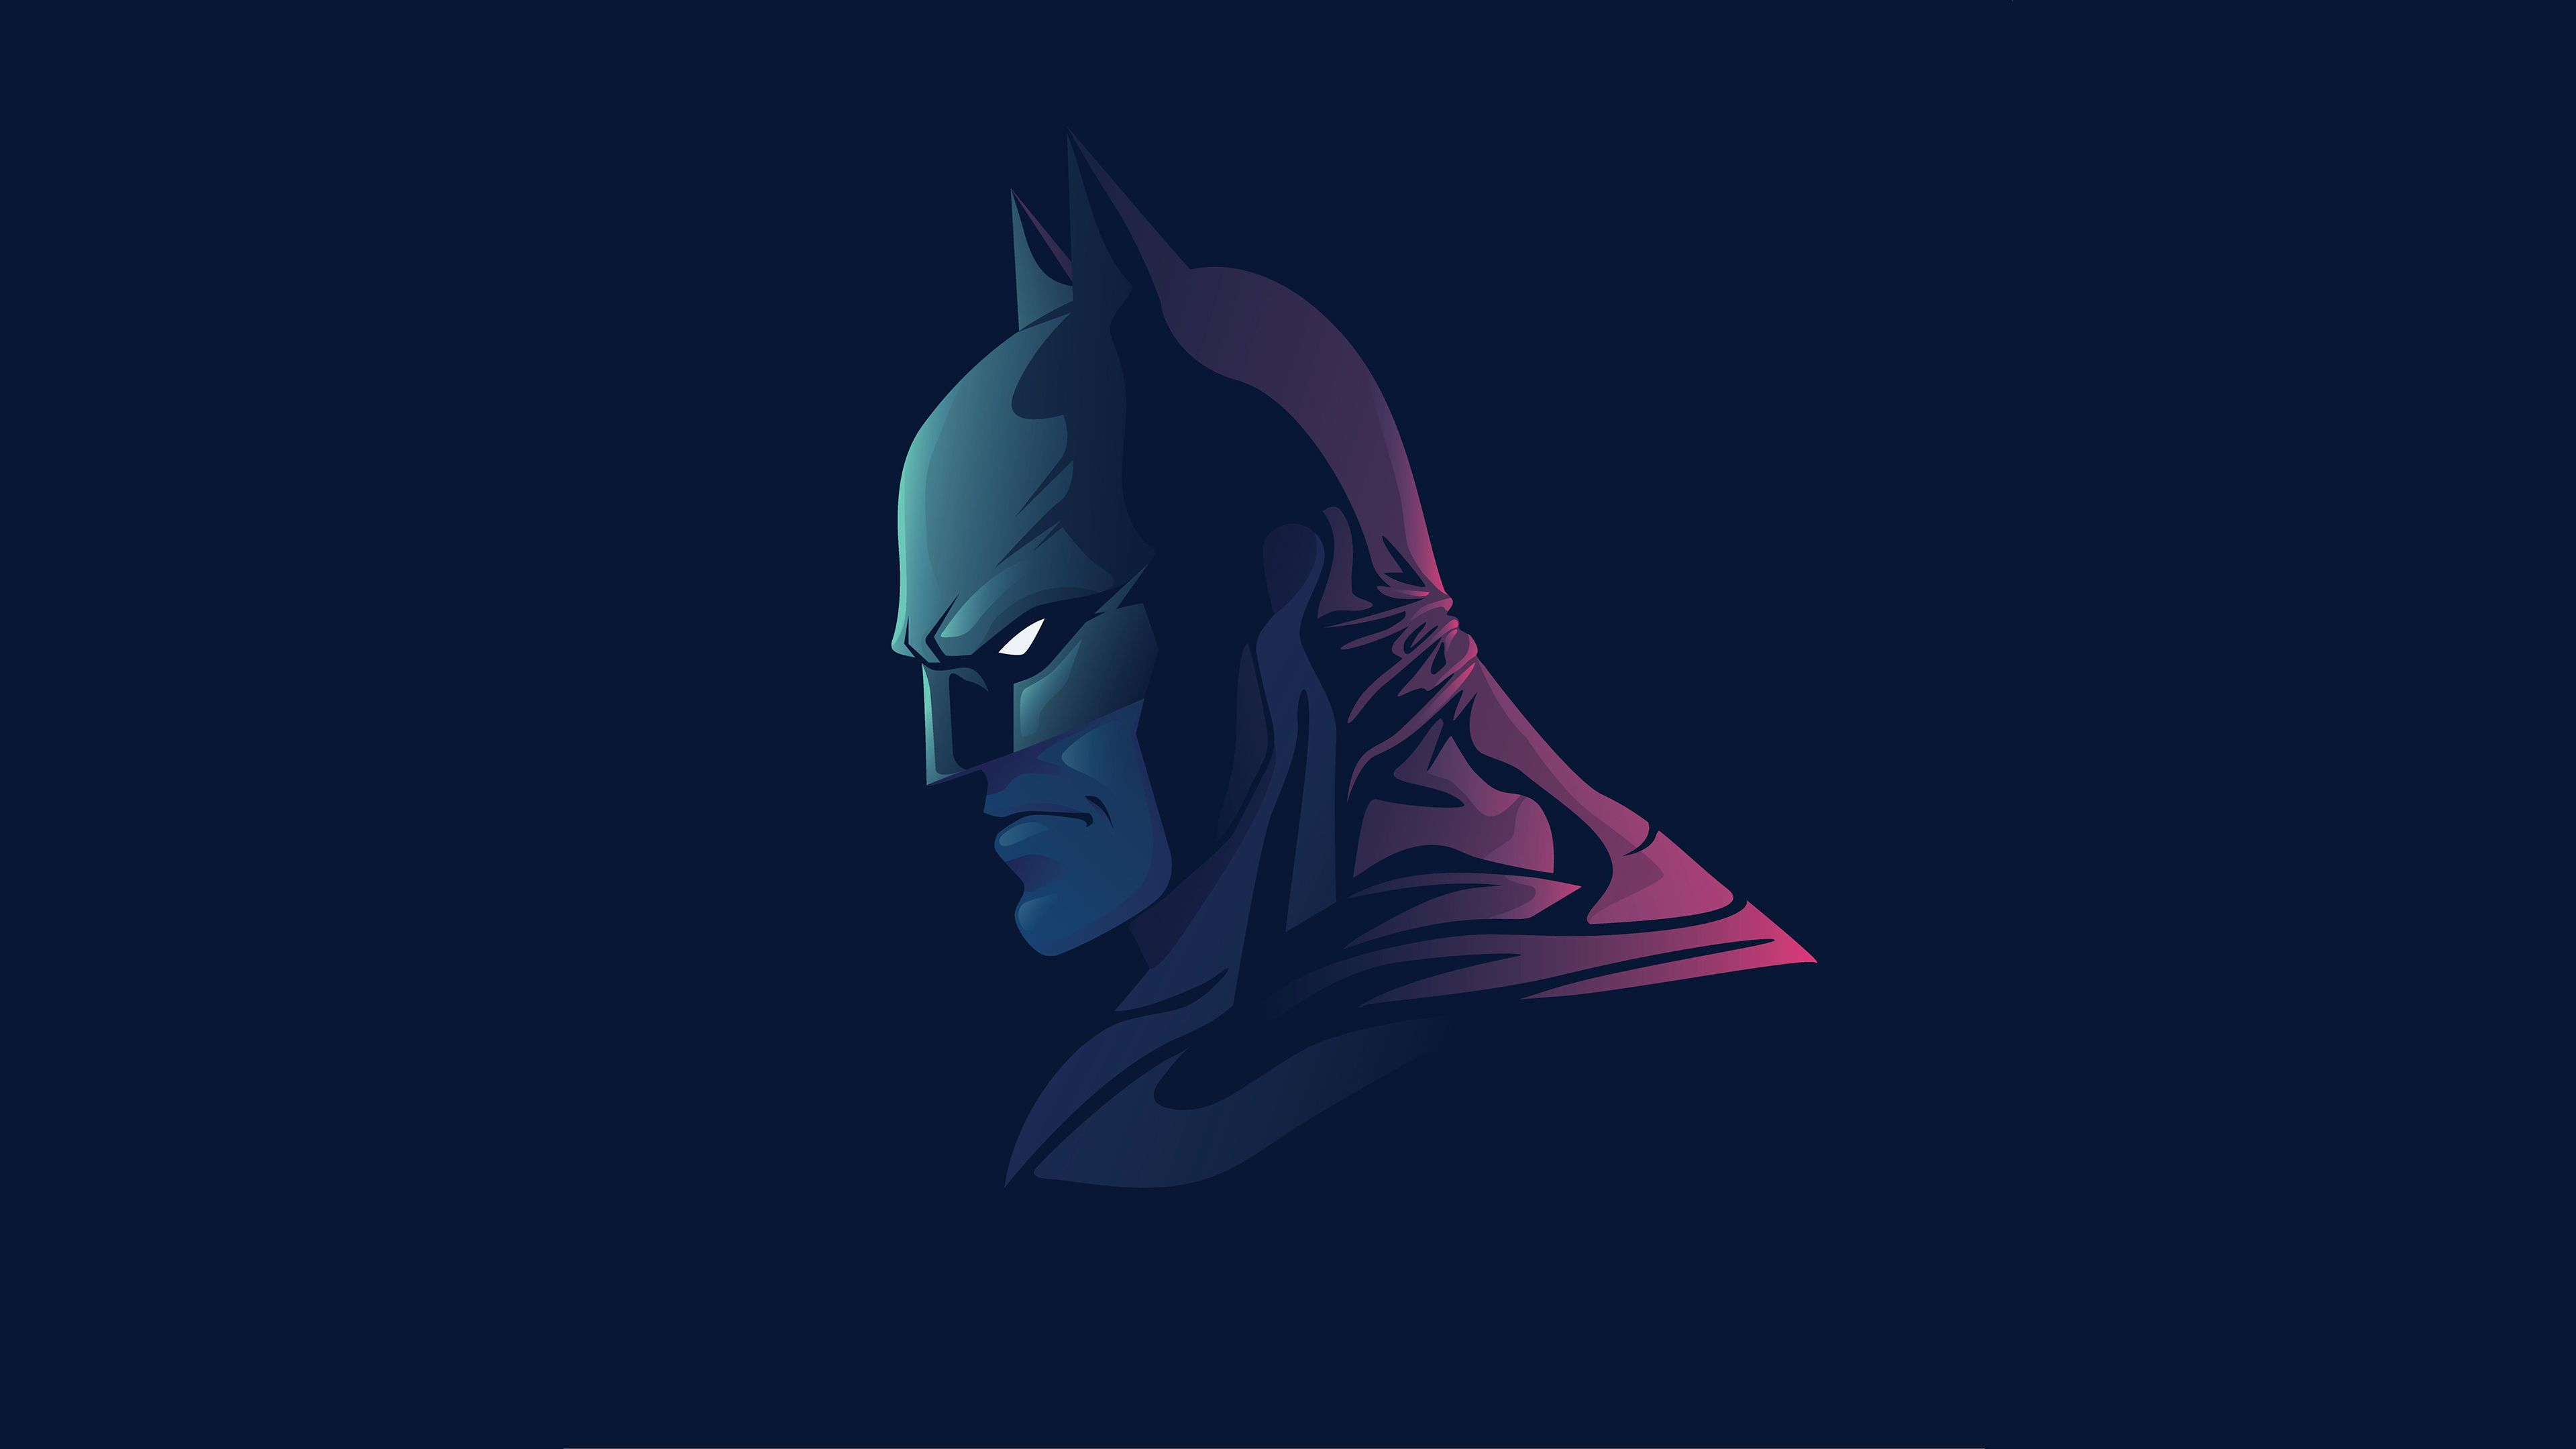 Batman Minimalist Wallpaper 4k Ultra HD ID: 3133